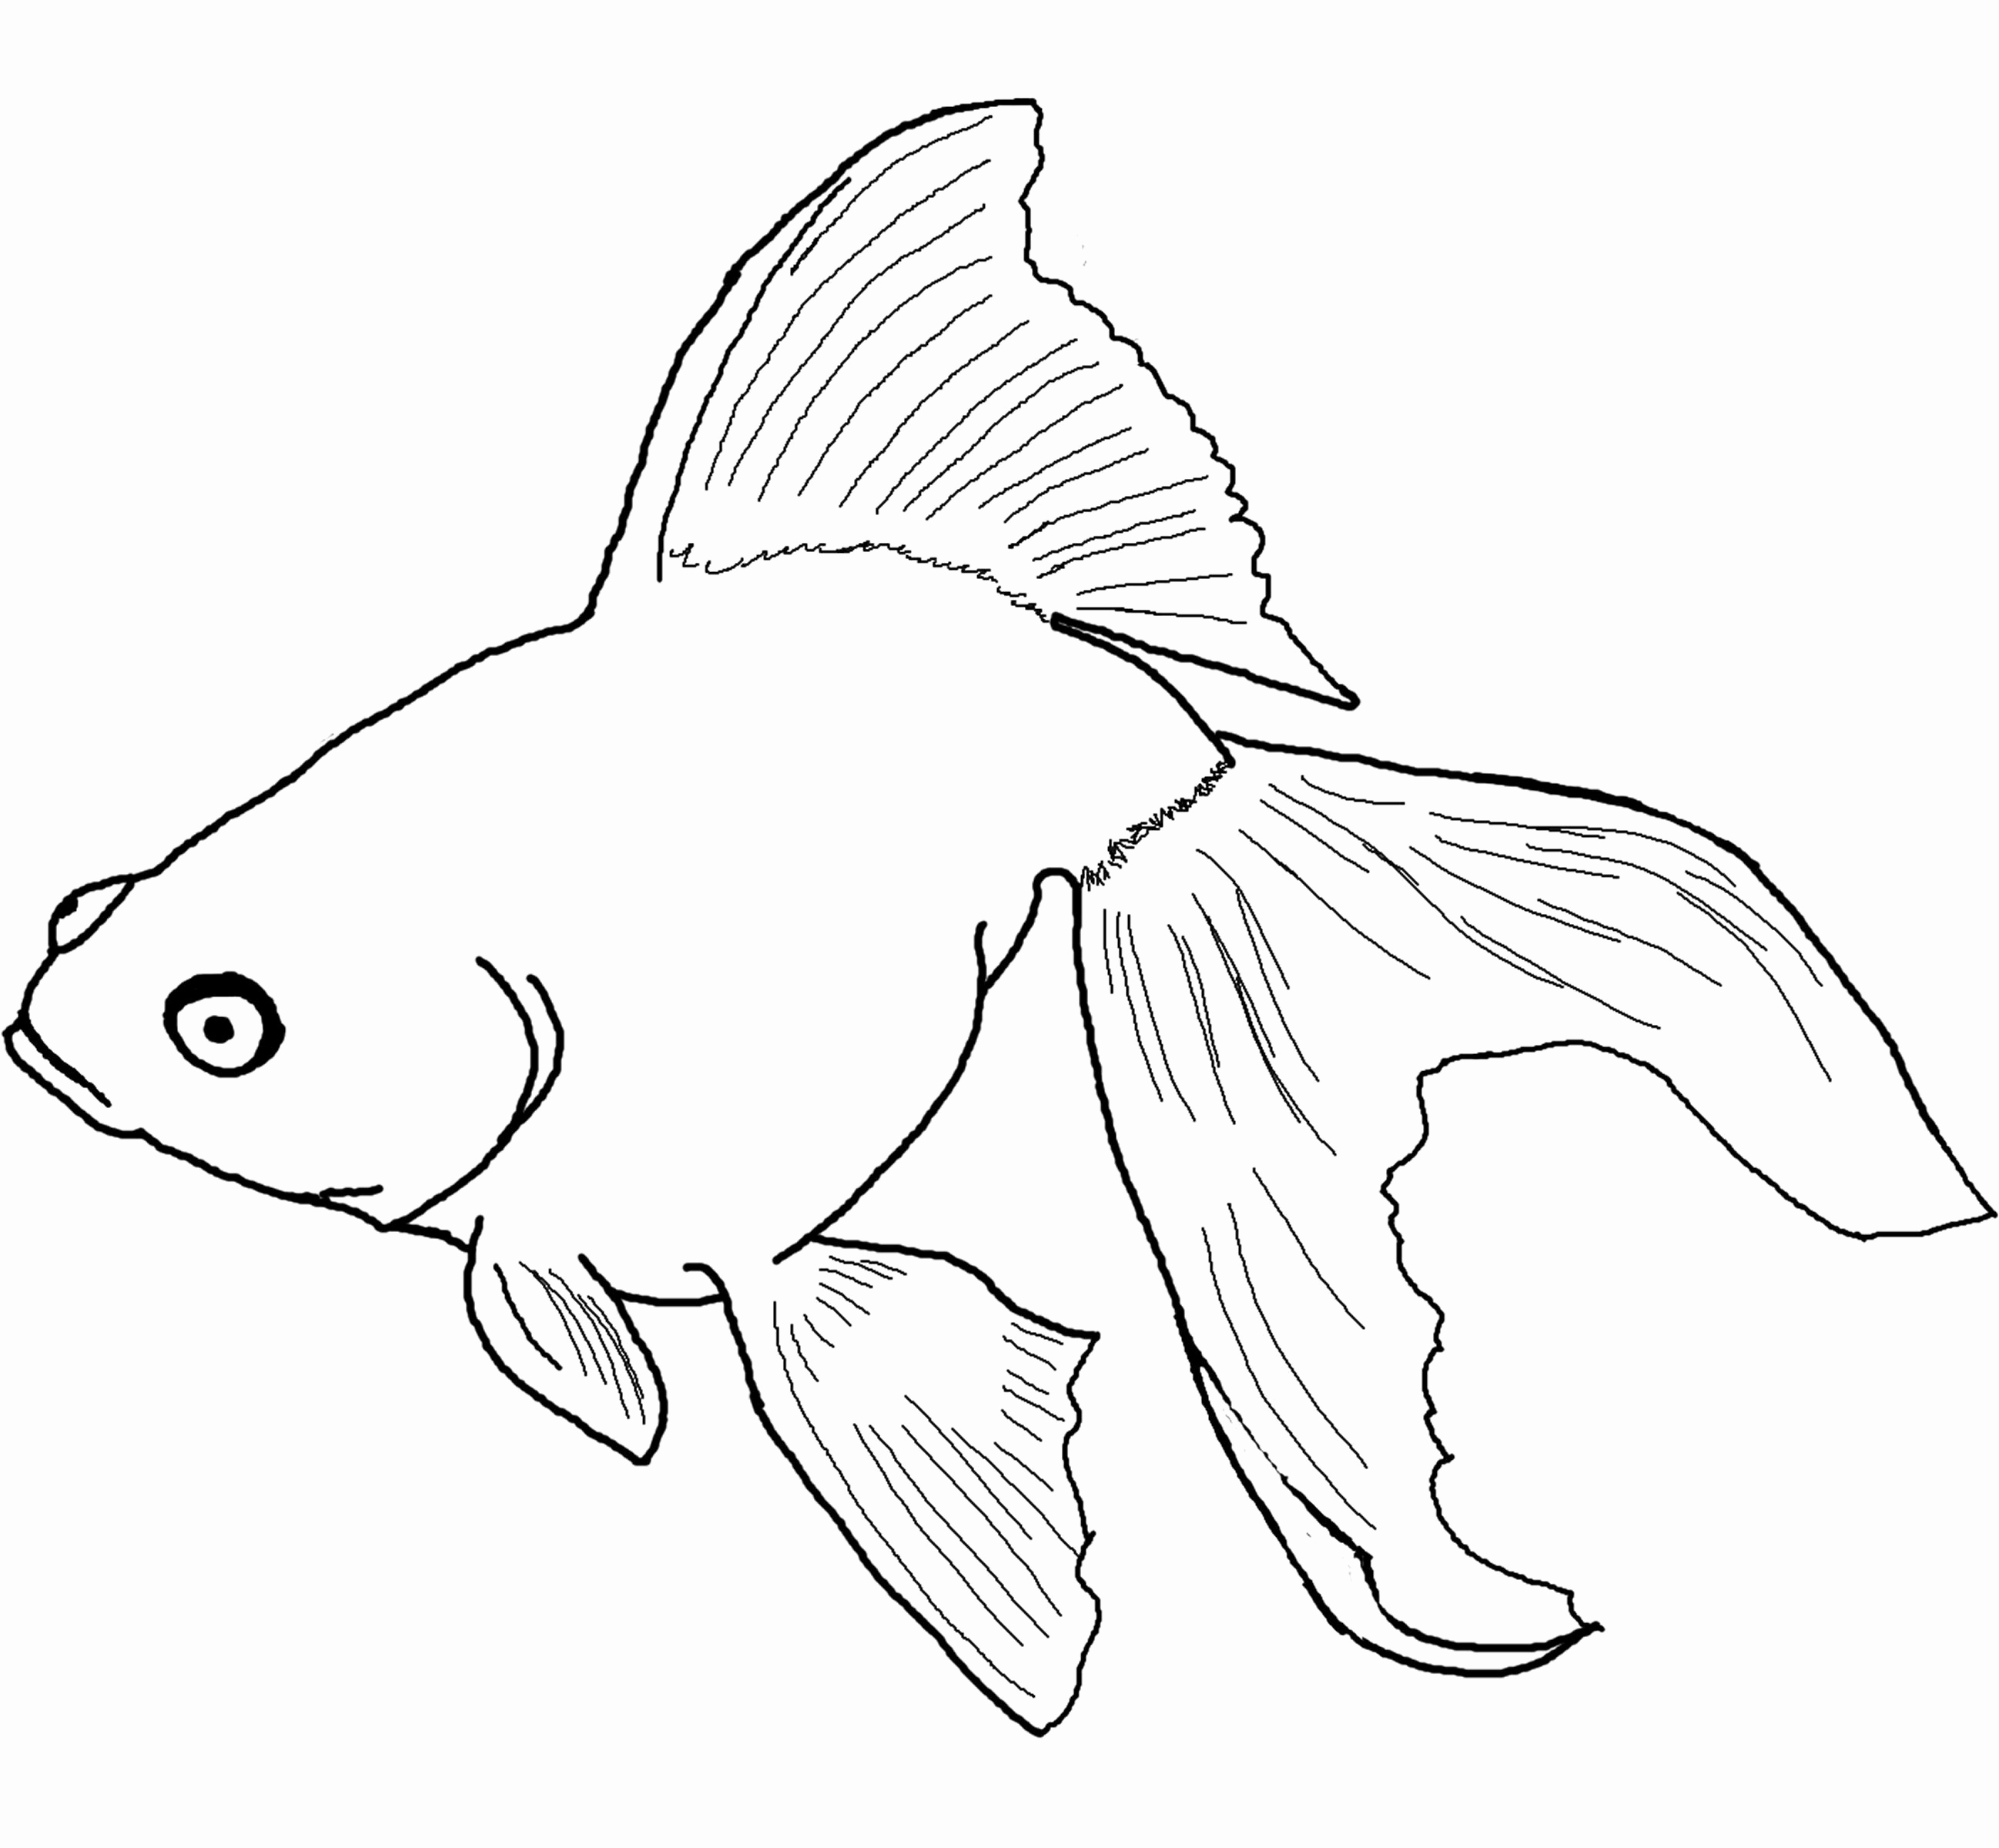 2596x2400 Town Coloring Pages Best Of Small Fish Coloring Pages Coloring